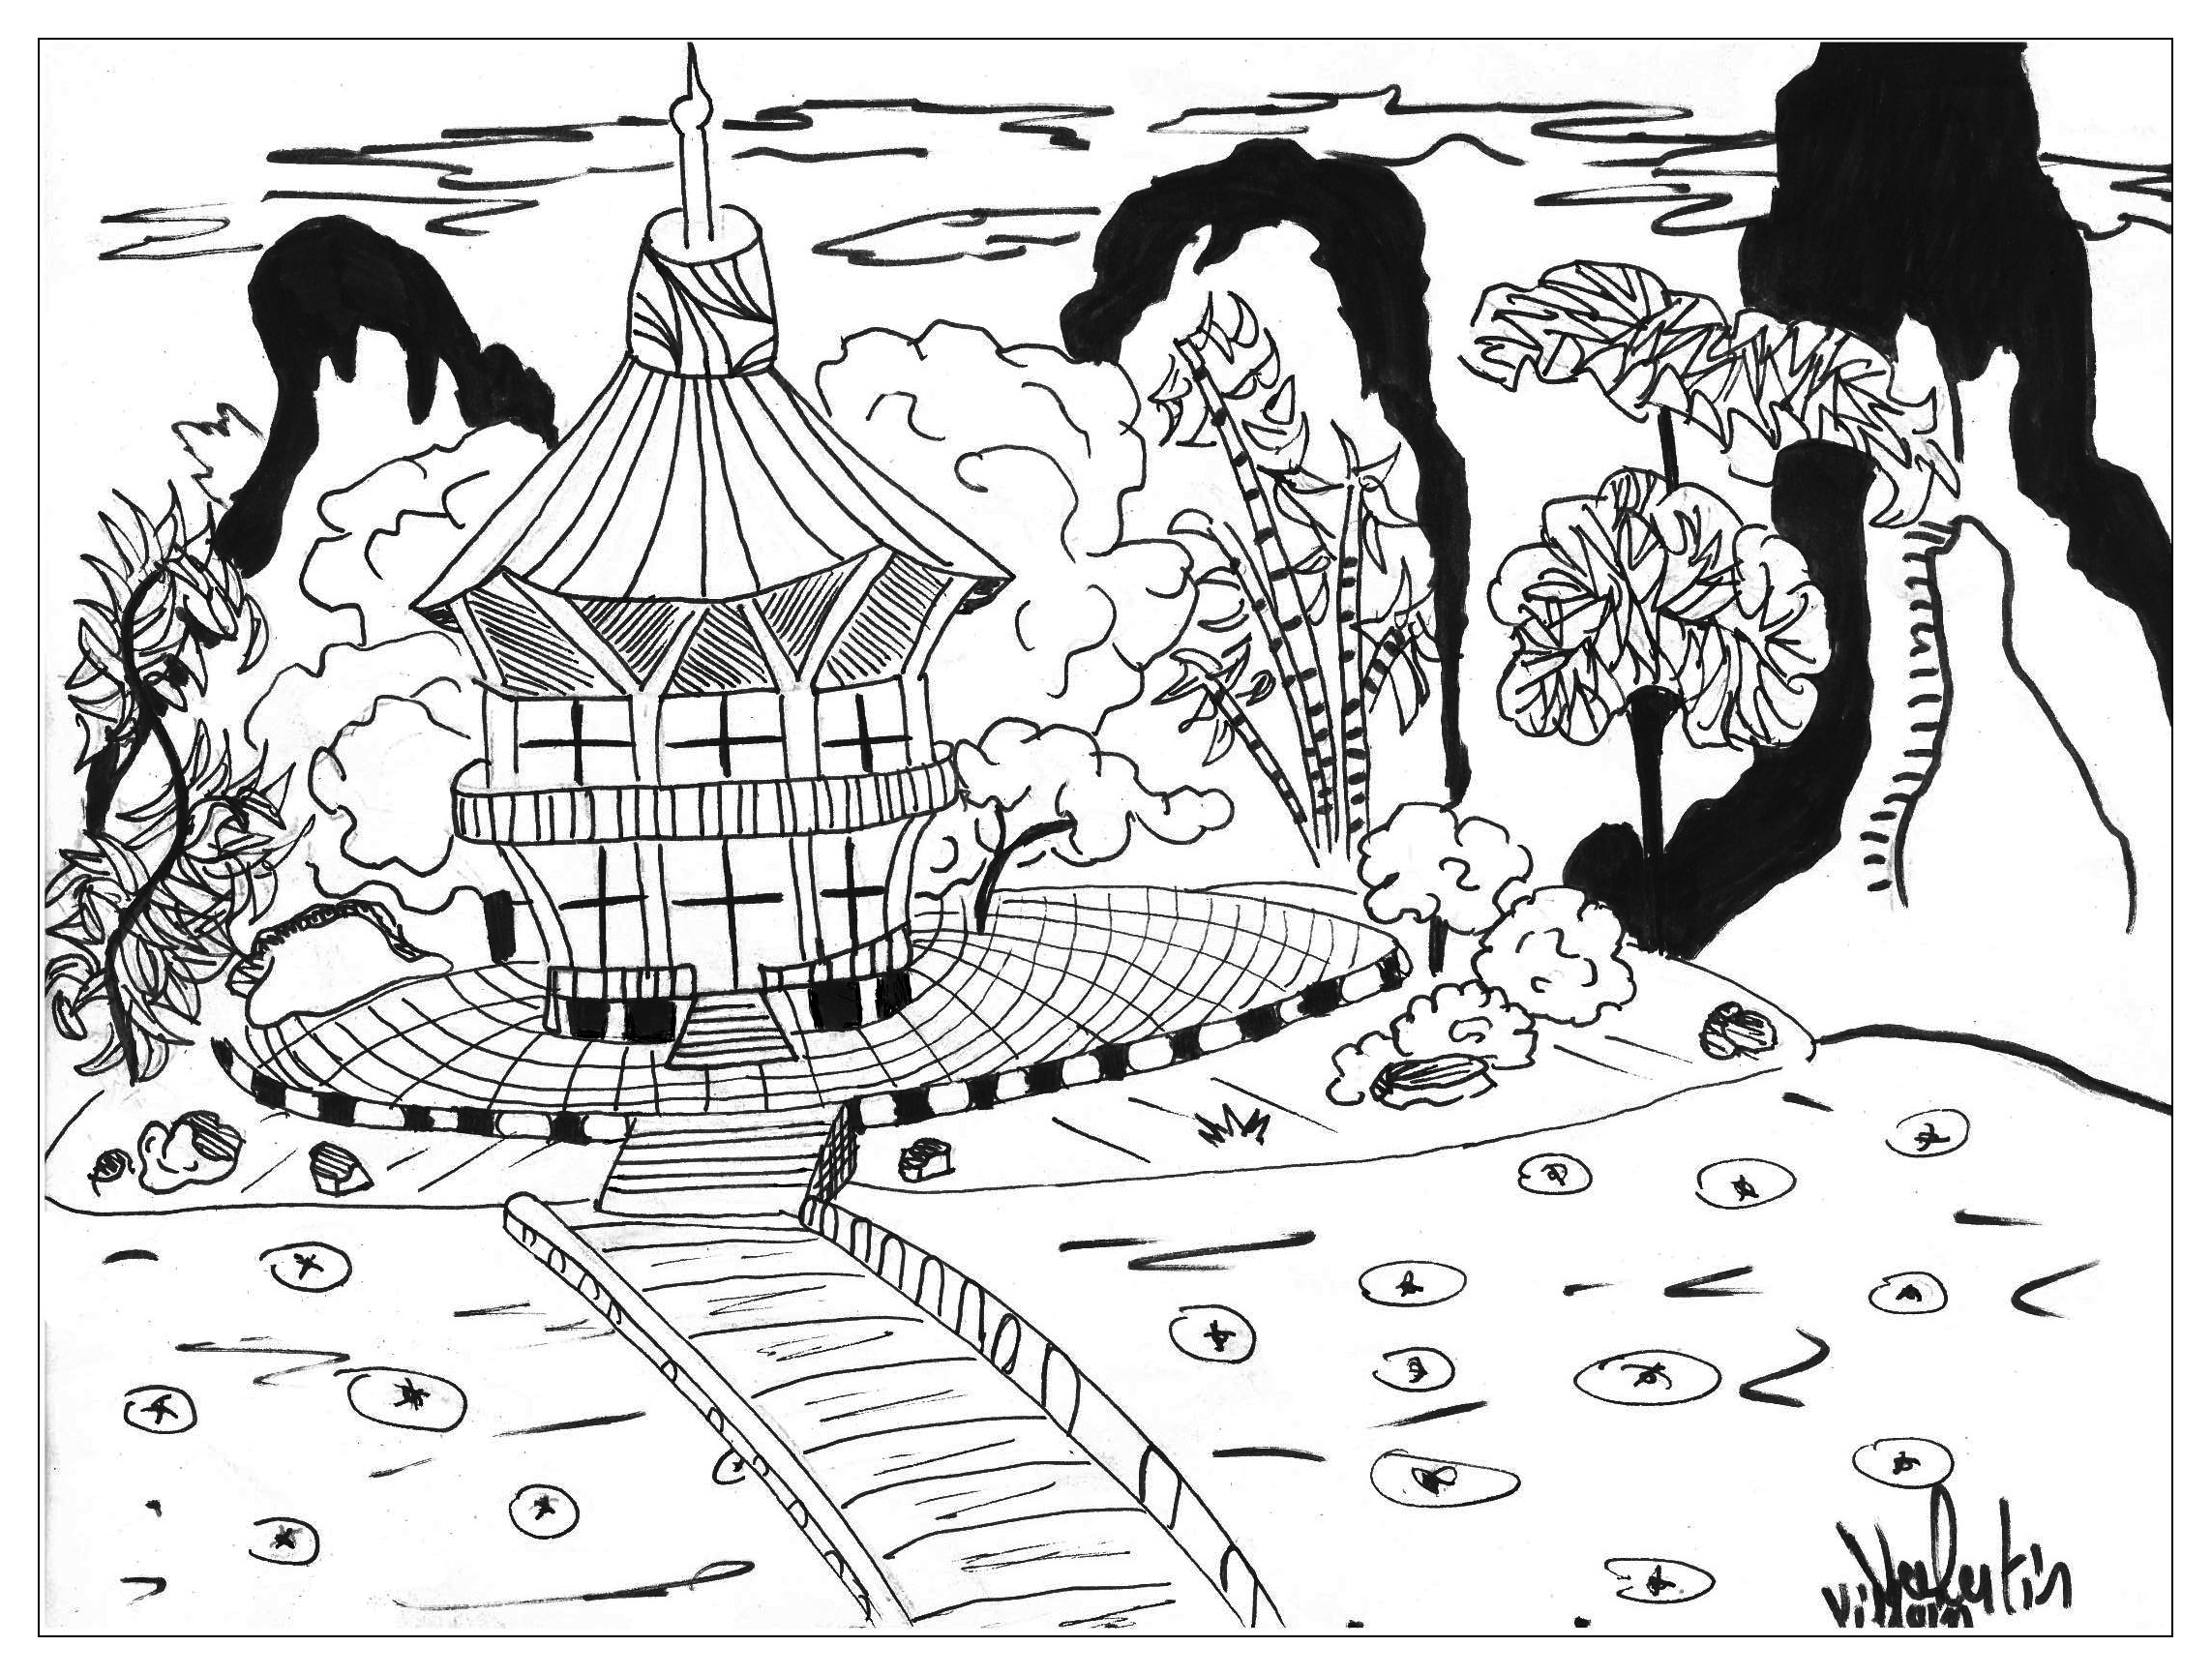 coloring page adults japan valentin free to print - Cherry Blossom Tree Coloring Pages